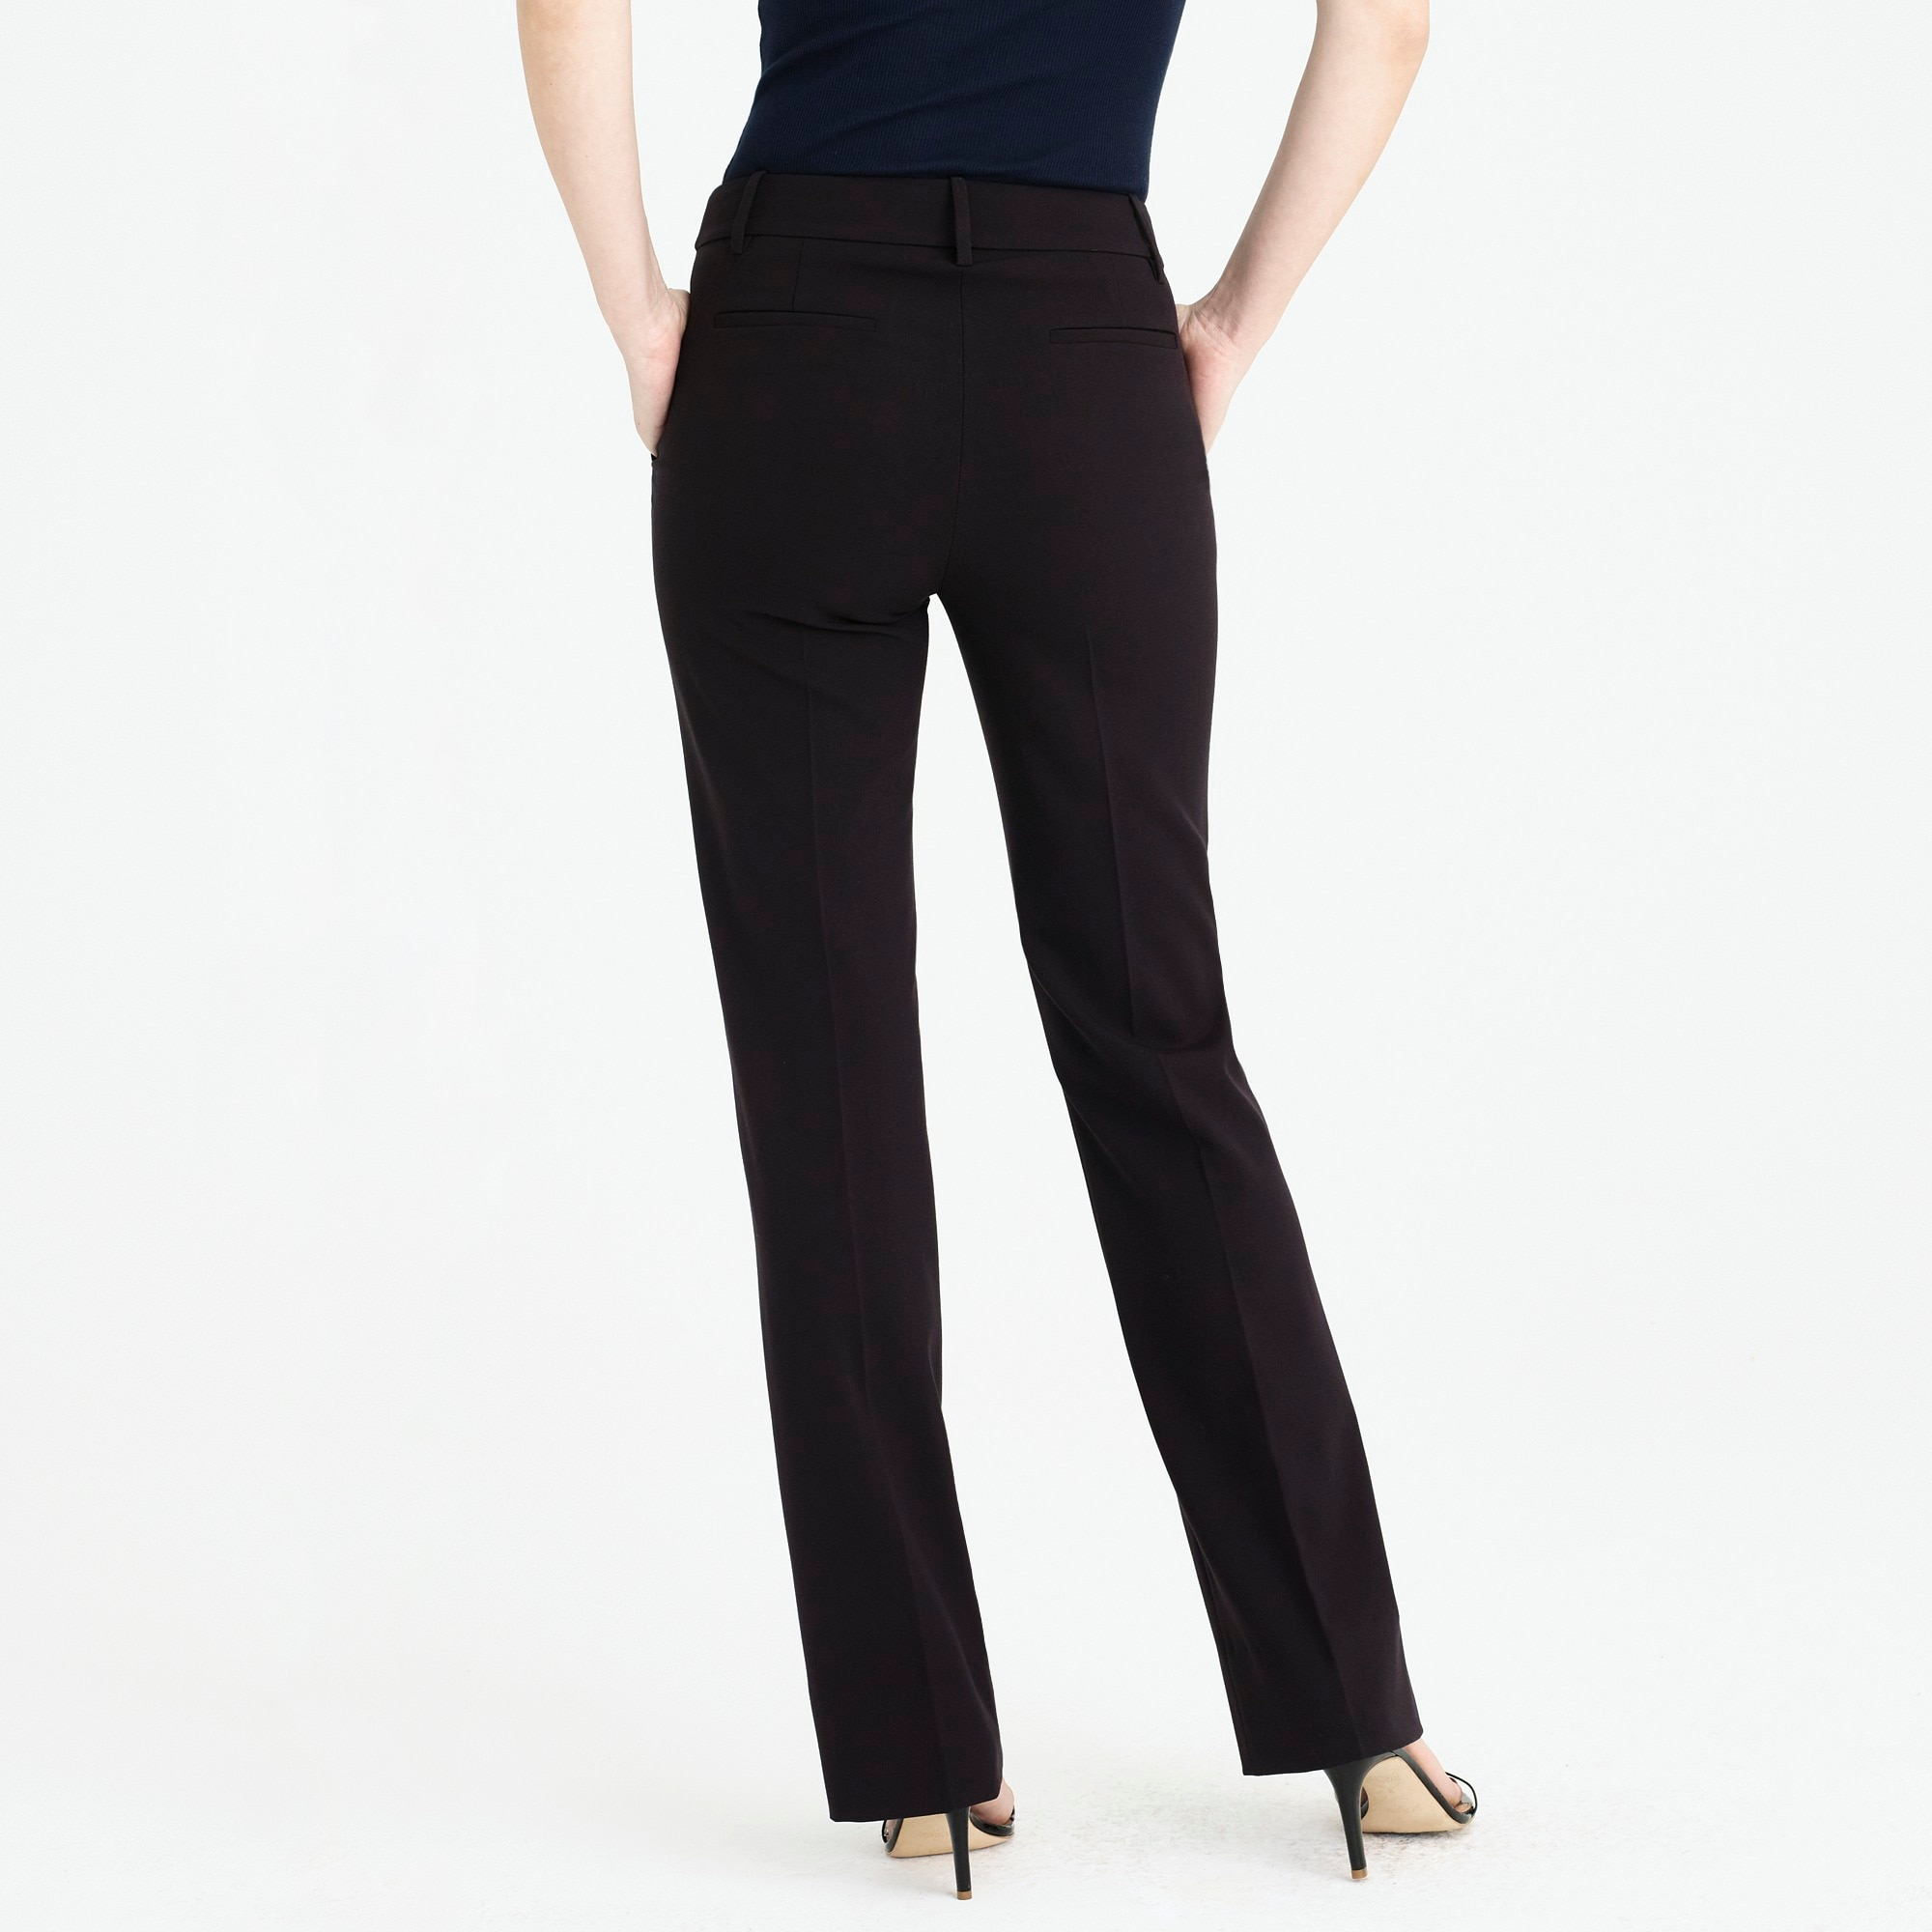 Image 3 for Petite work trouser